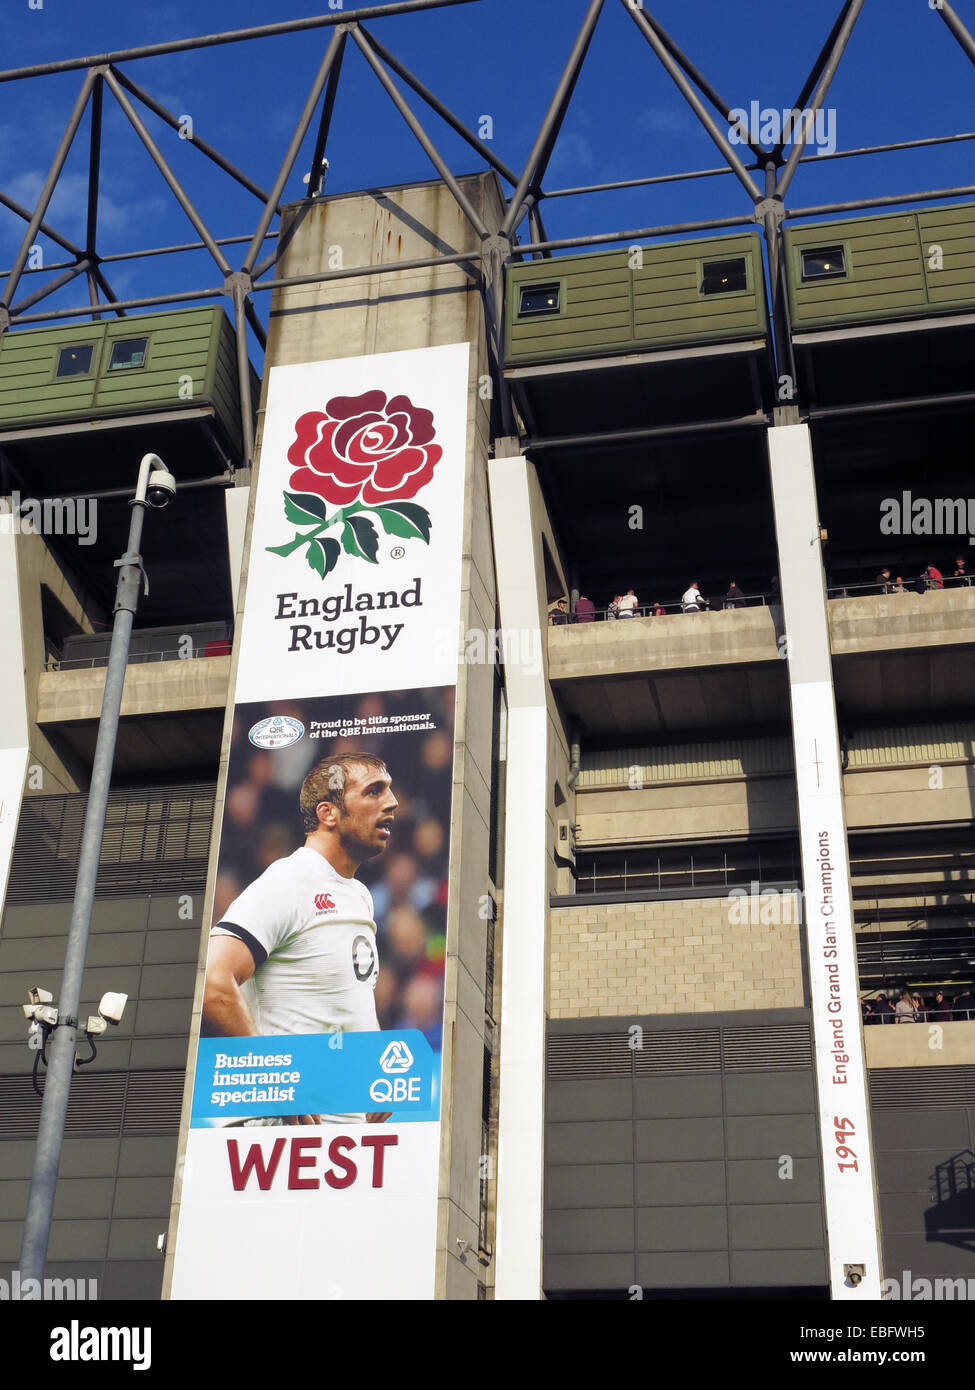 team,sport,stadium,programme,program,hospitality,stadia,stadium,ticket,hospitality,visit,trip,business,home,of,the,RFU,championship,champion,UK,GB,west,stand,england,EnglandRugby,competitive,gotonysmith,qbe,6nations,6,nations,six,tournament,sporting,venue,champions,united,Kingdom,Great,Britain,international,venue,Buy Pictures of,Buy Images Of